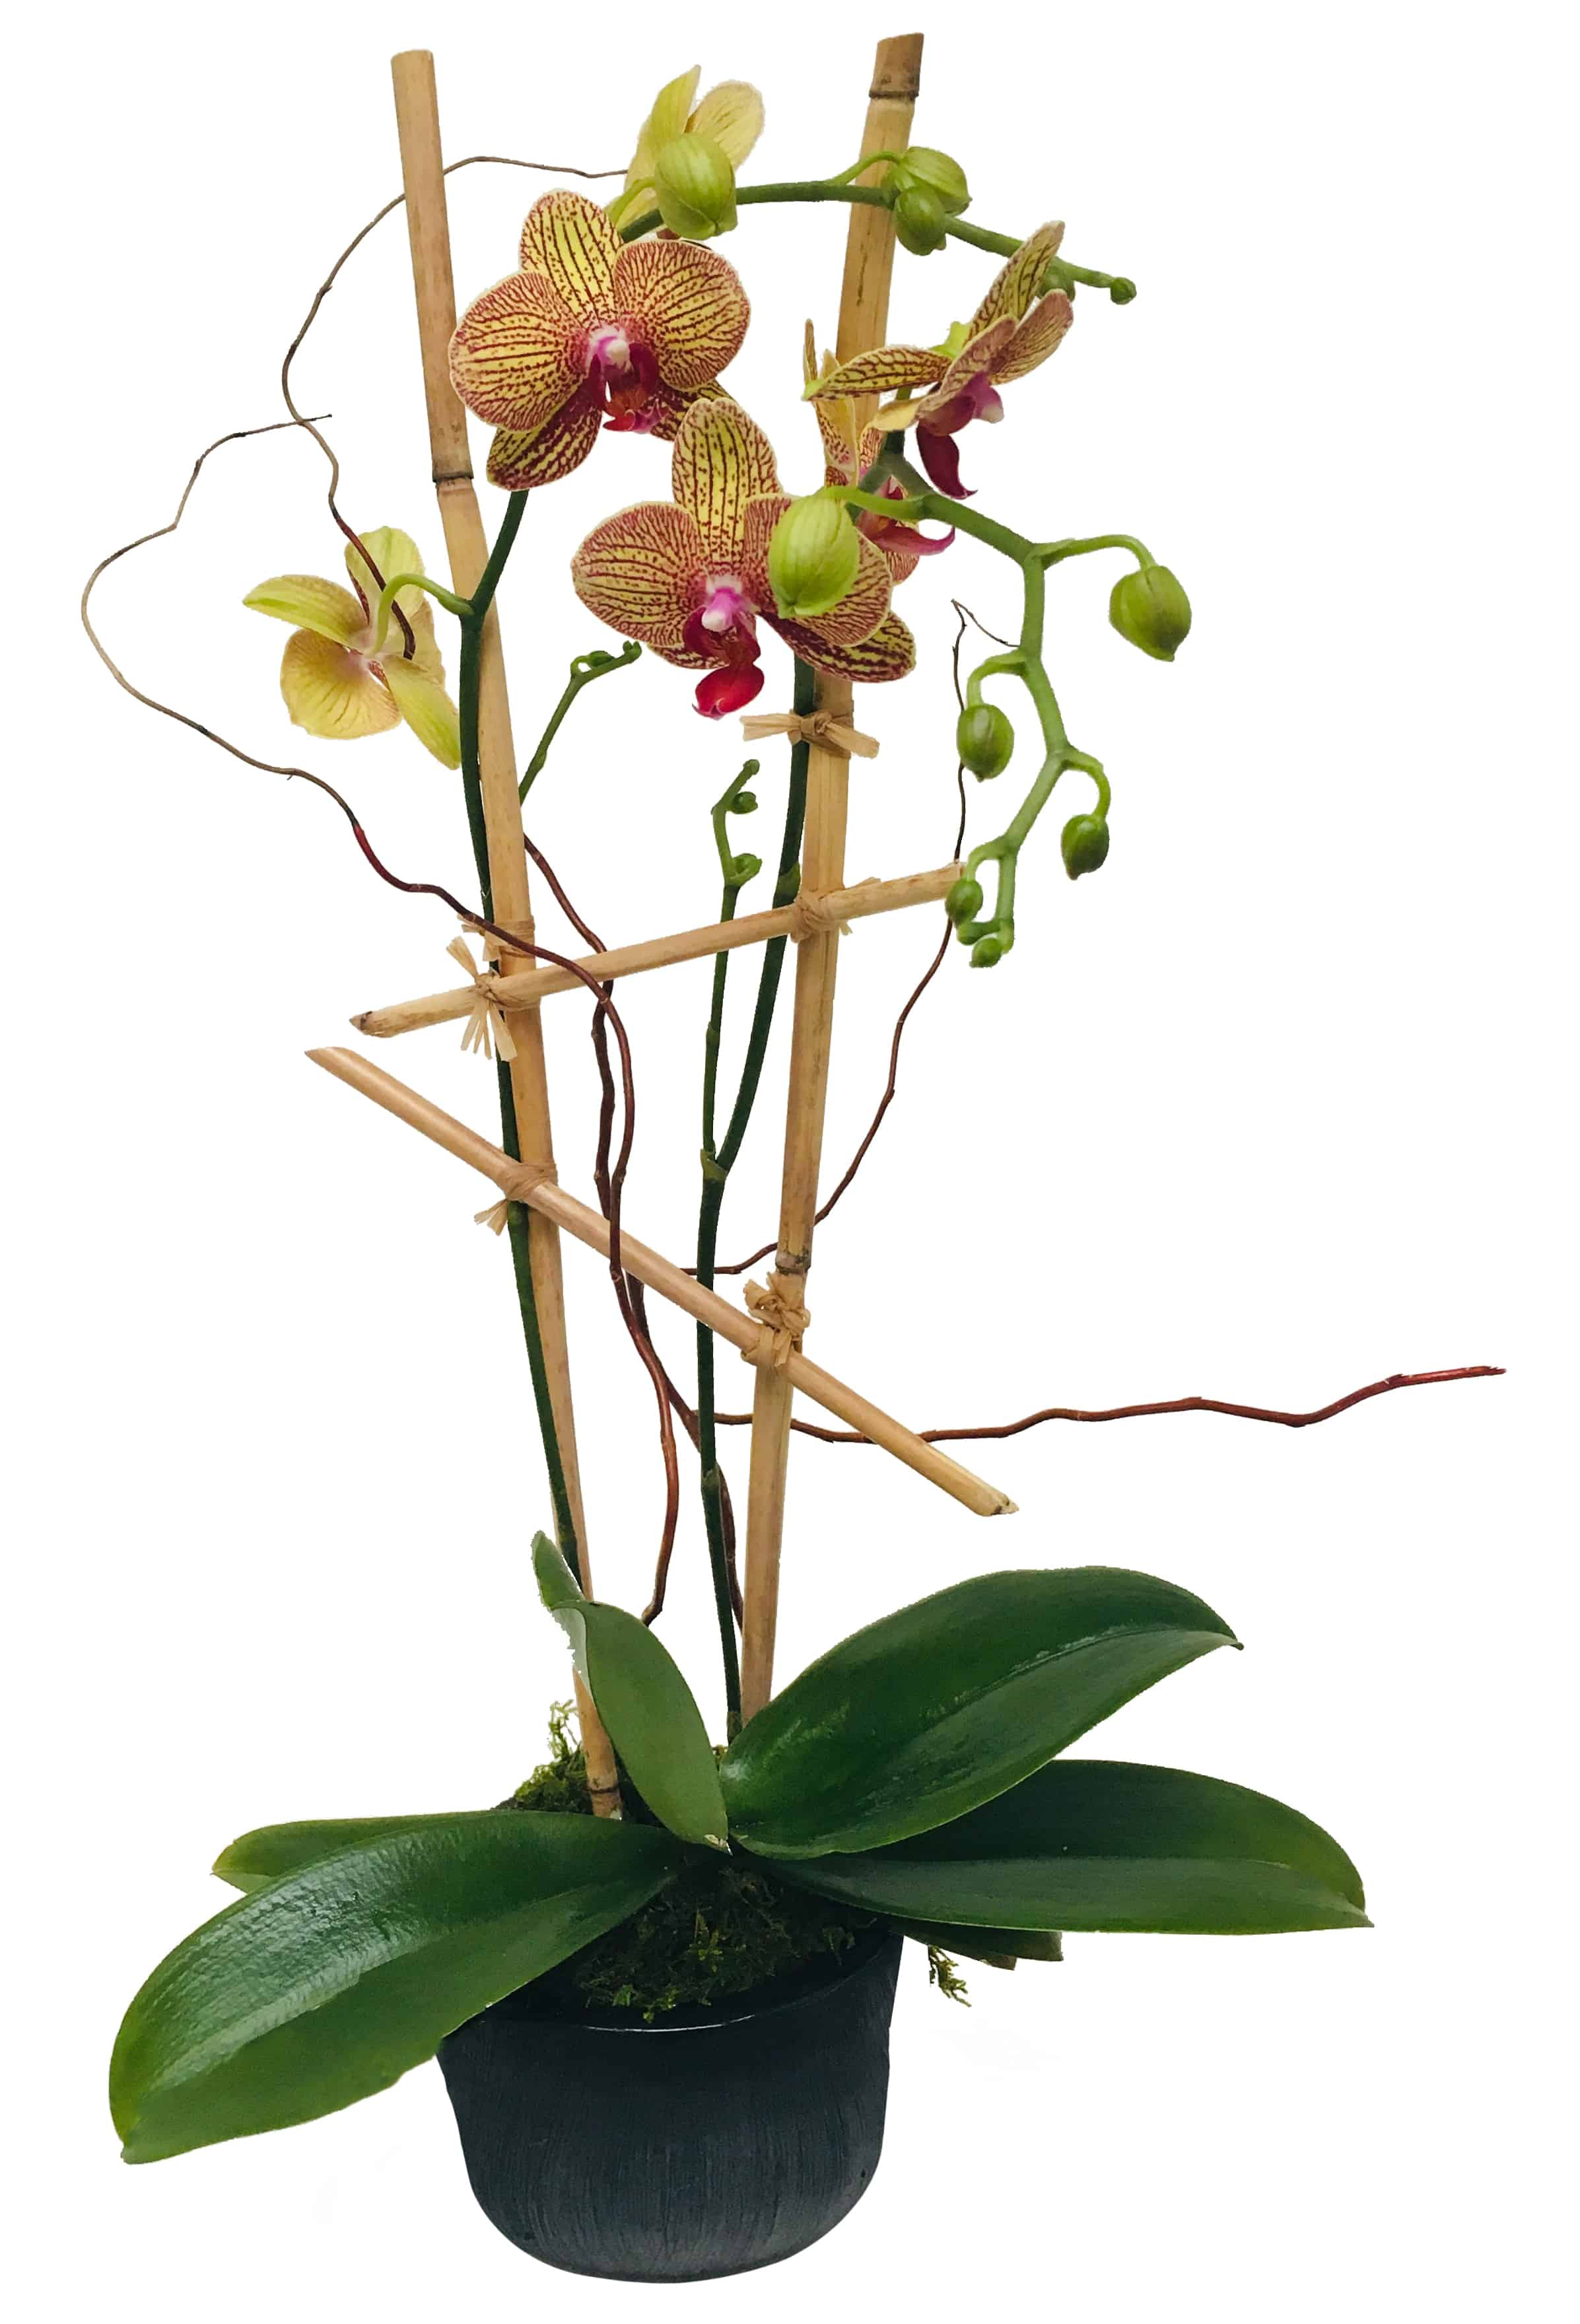 Double Stem Phalaenopsis Orchid Plant | San Francisco Florist Since 1871 Free Bay Area and San Francisco Flower Delivery